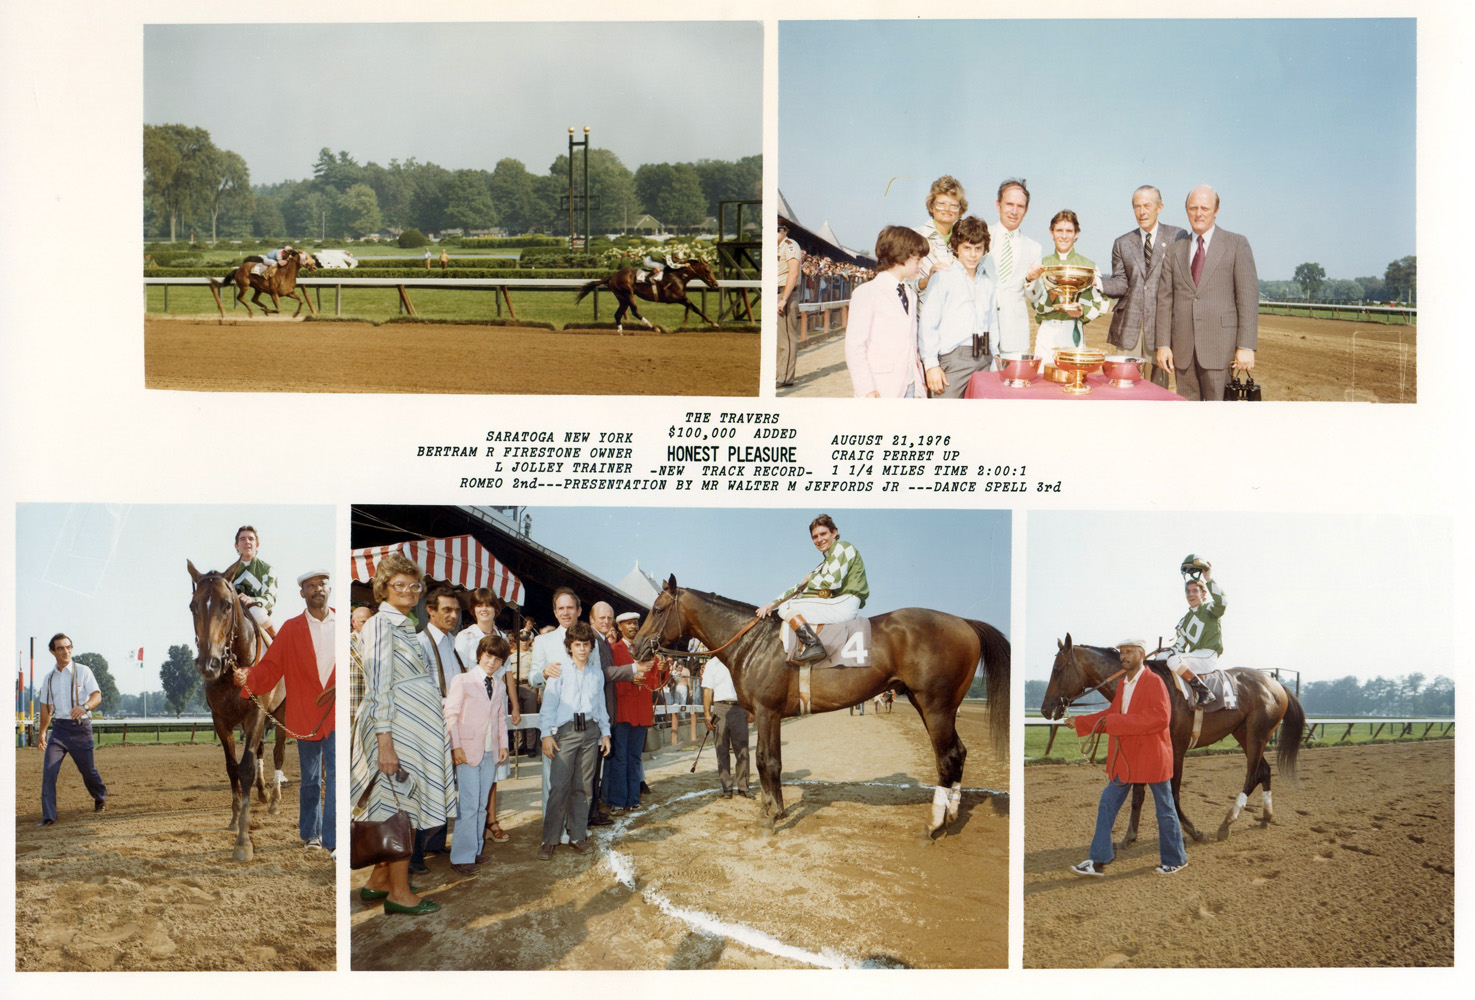 Win composite photograph for the 1976 Travers Stakes, won by Honest Pleasure (Craig Perret up), trained by LeRoy Jolley (NYRA/Bob Coglianese /Museum Collection)